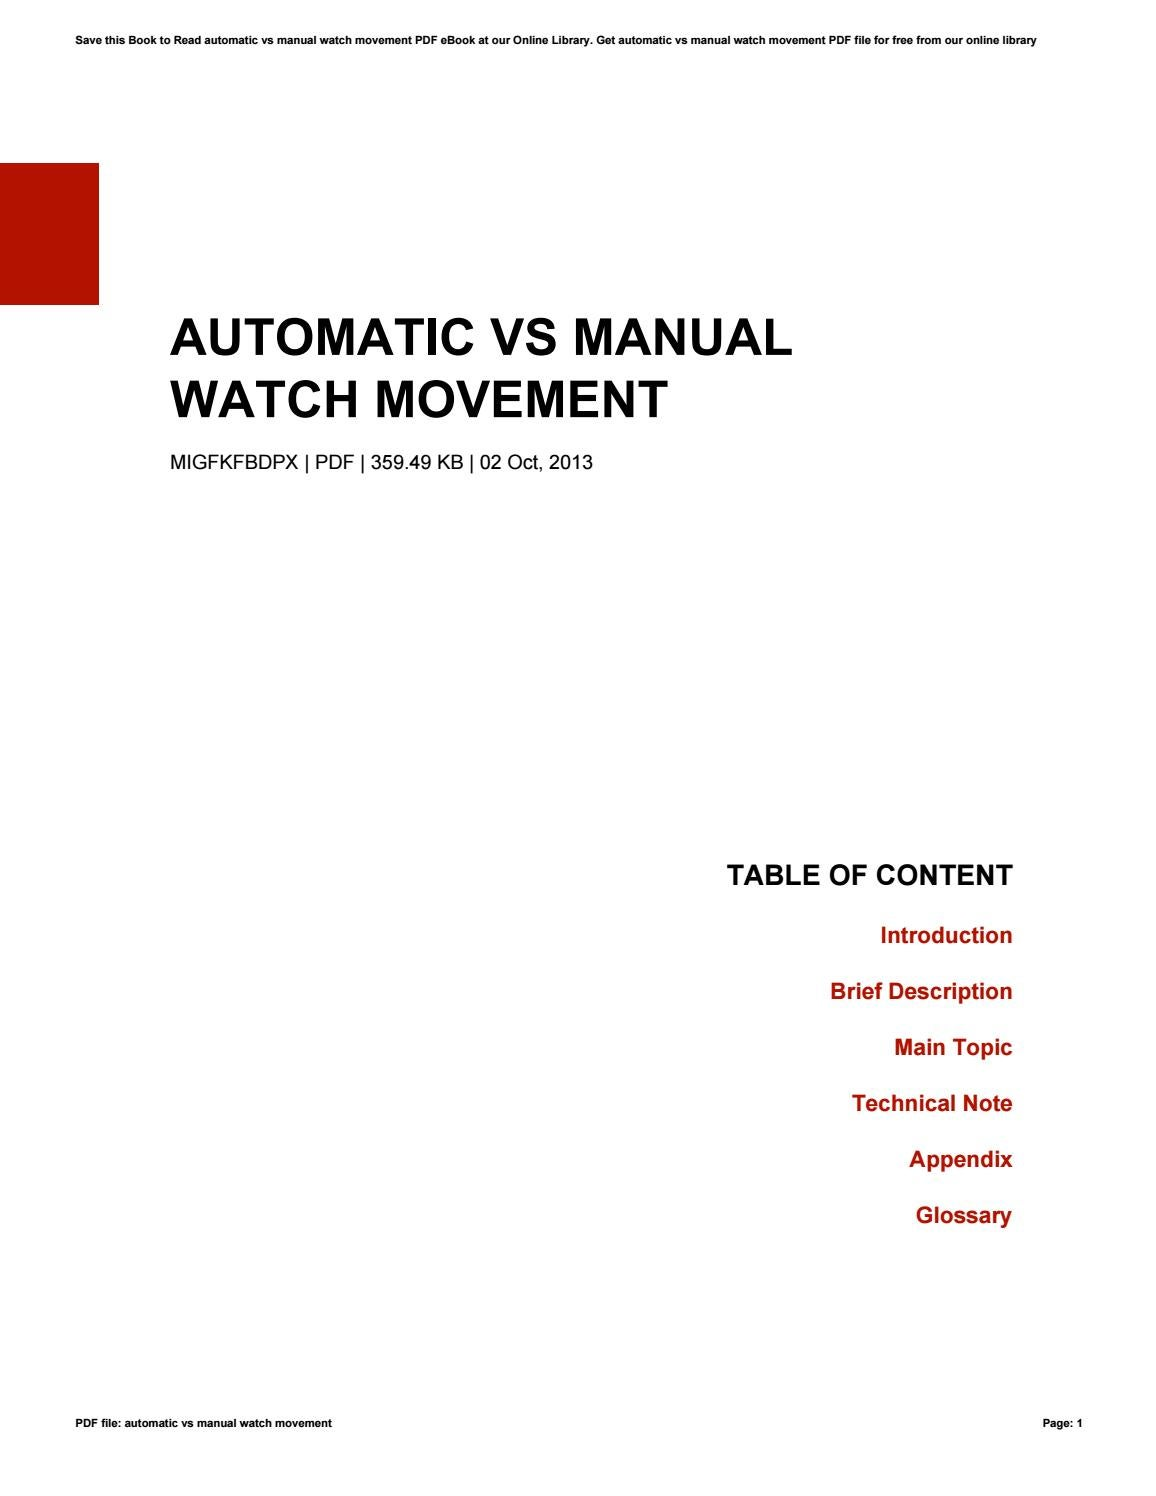 Automatic vs manual watch movement by WilliamDelatorre2813